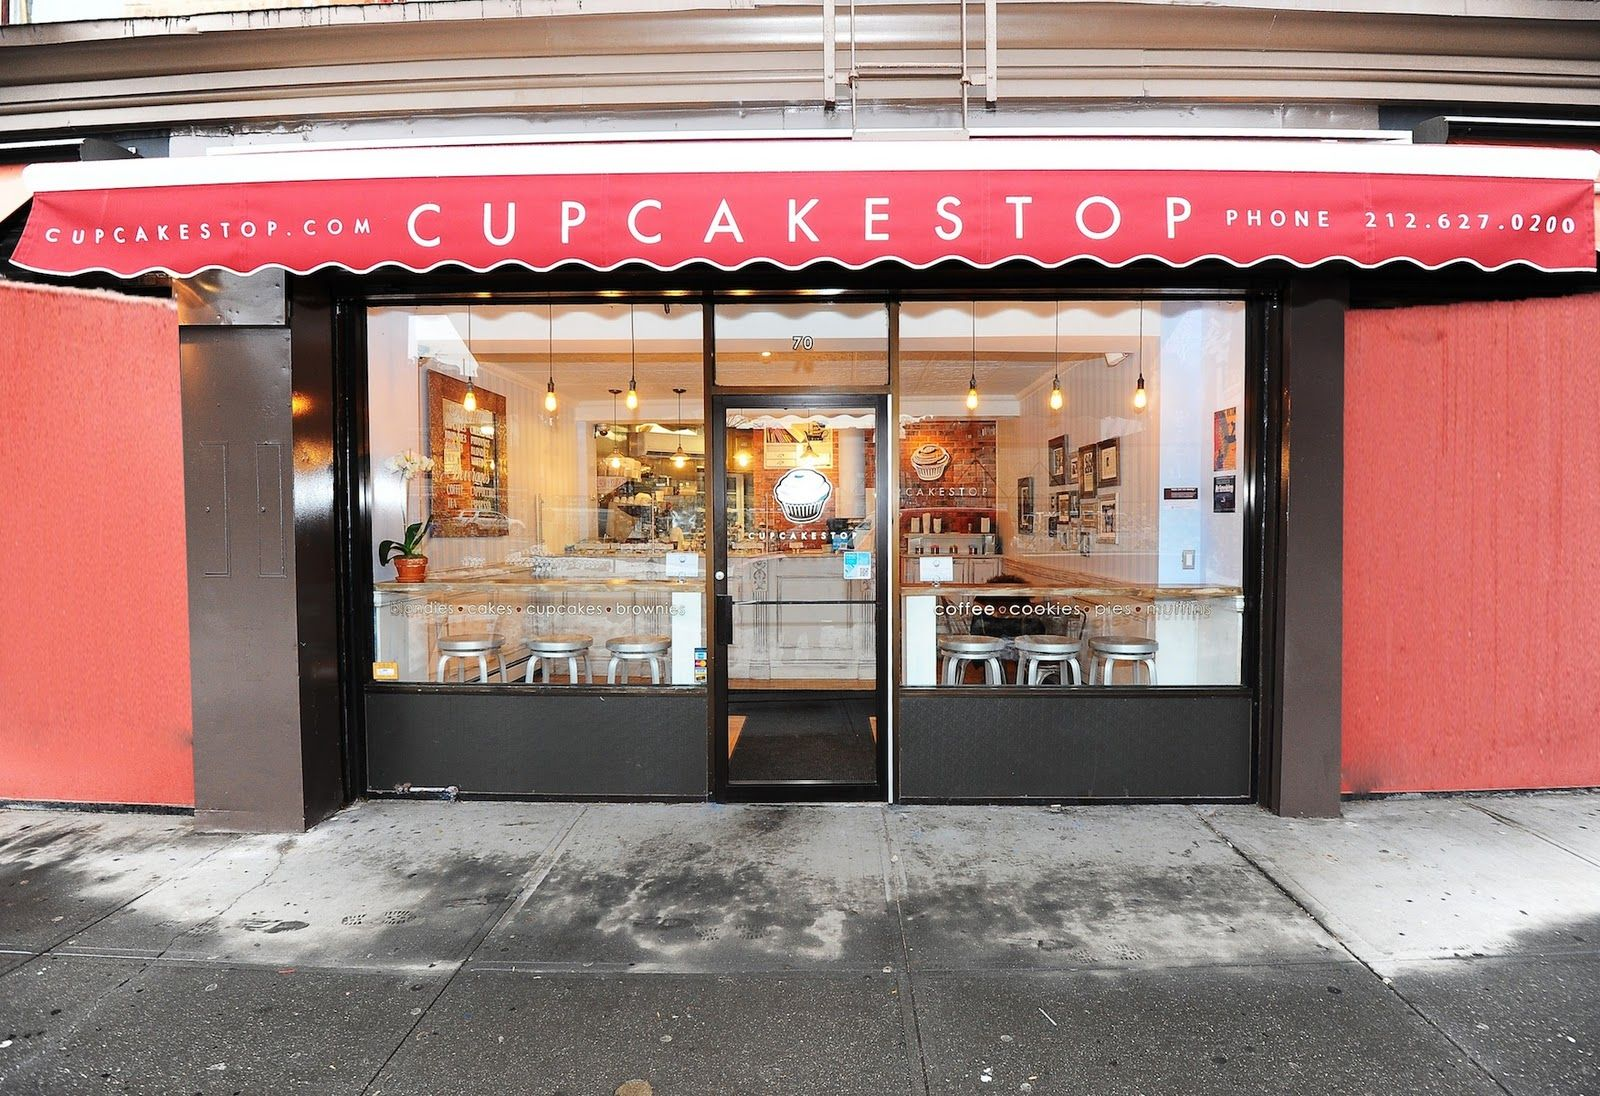 Design context bakery shop fronts escaparates o for Bakery shop decoration ideas